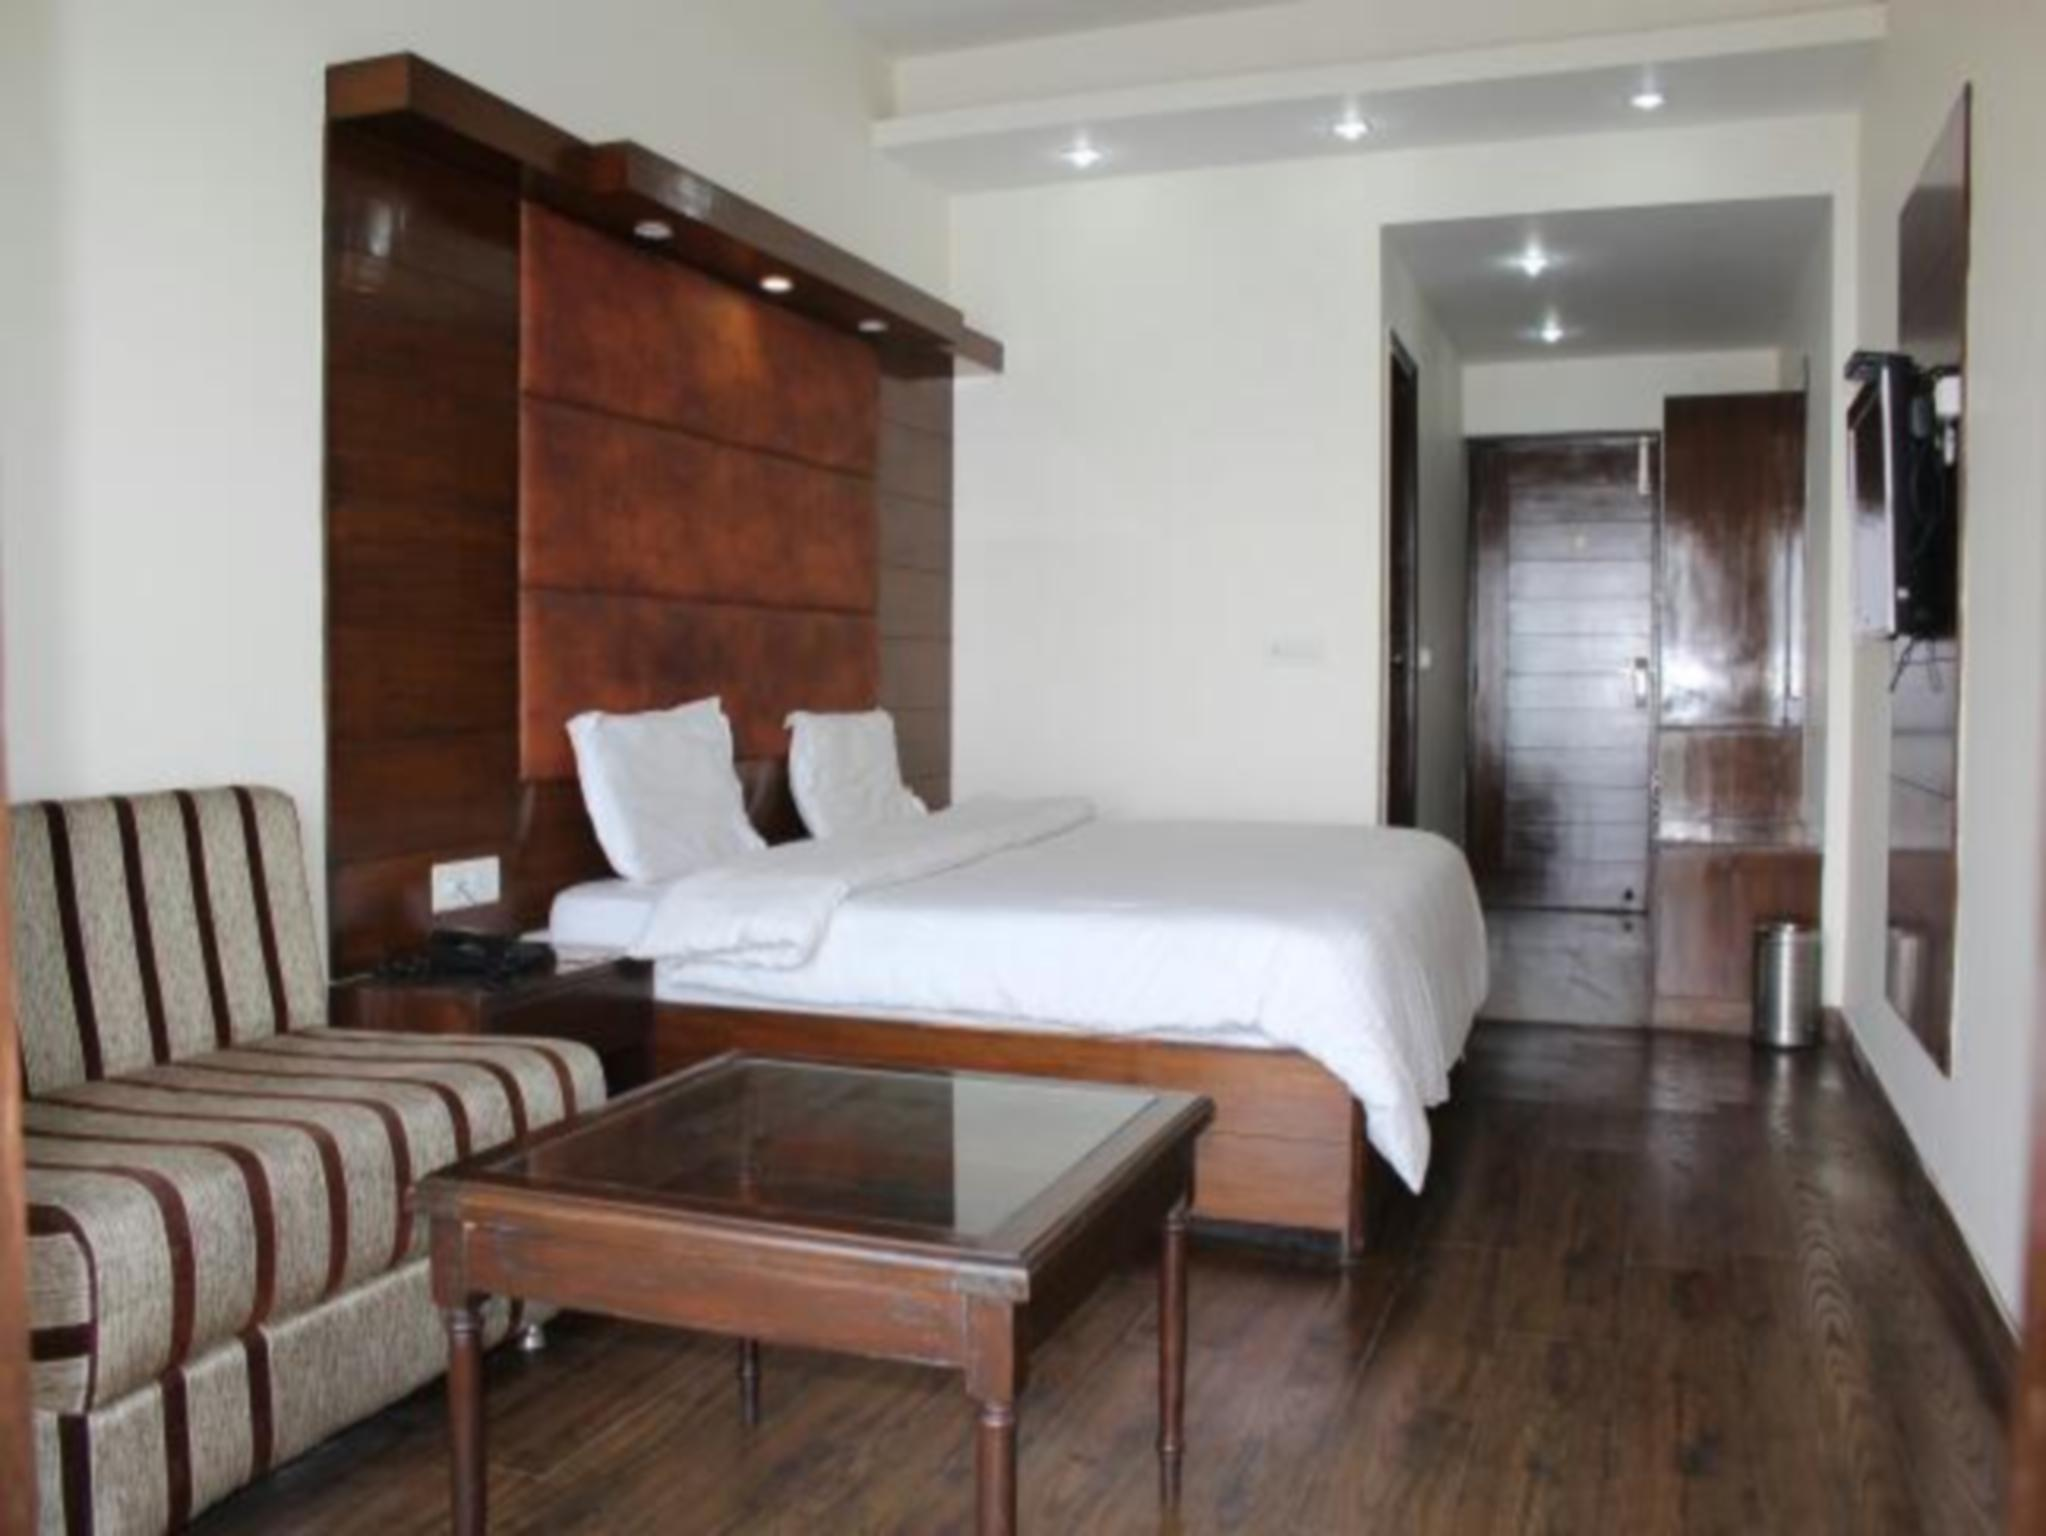 Hotel Palazzo Mussoorie Reviews